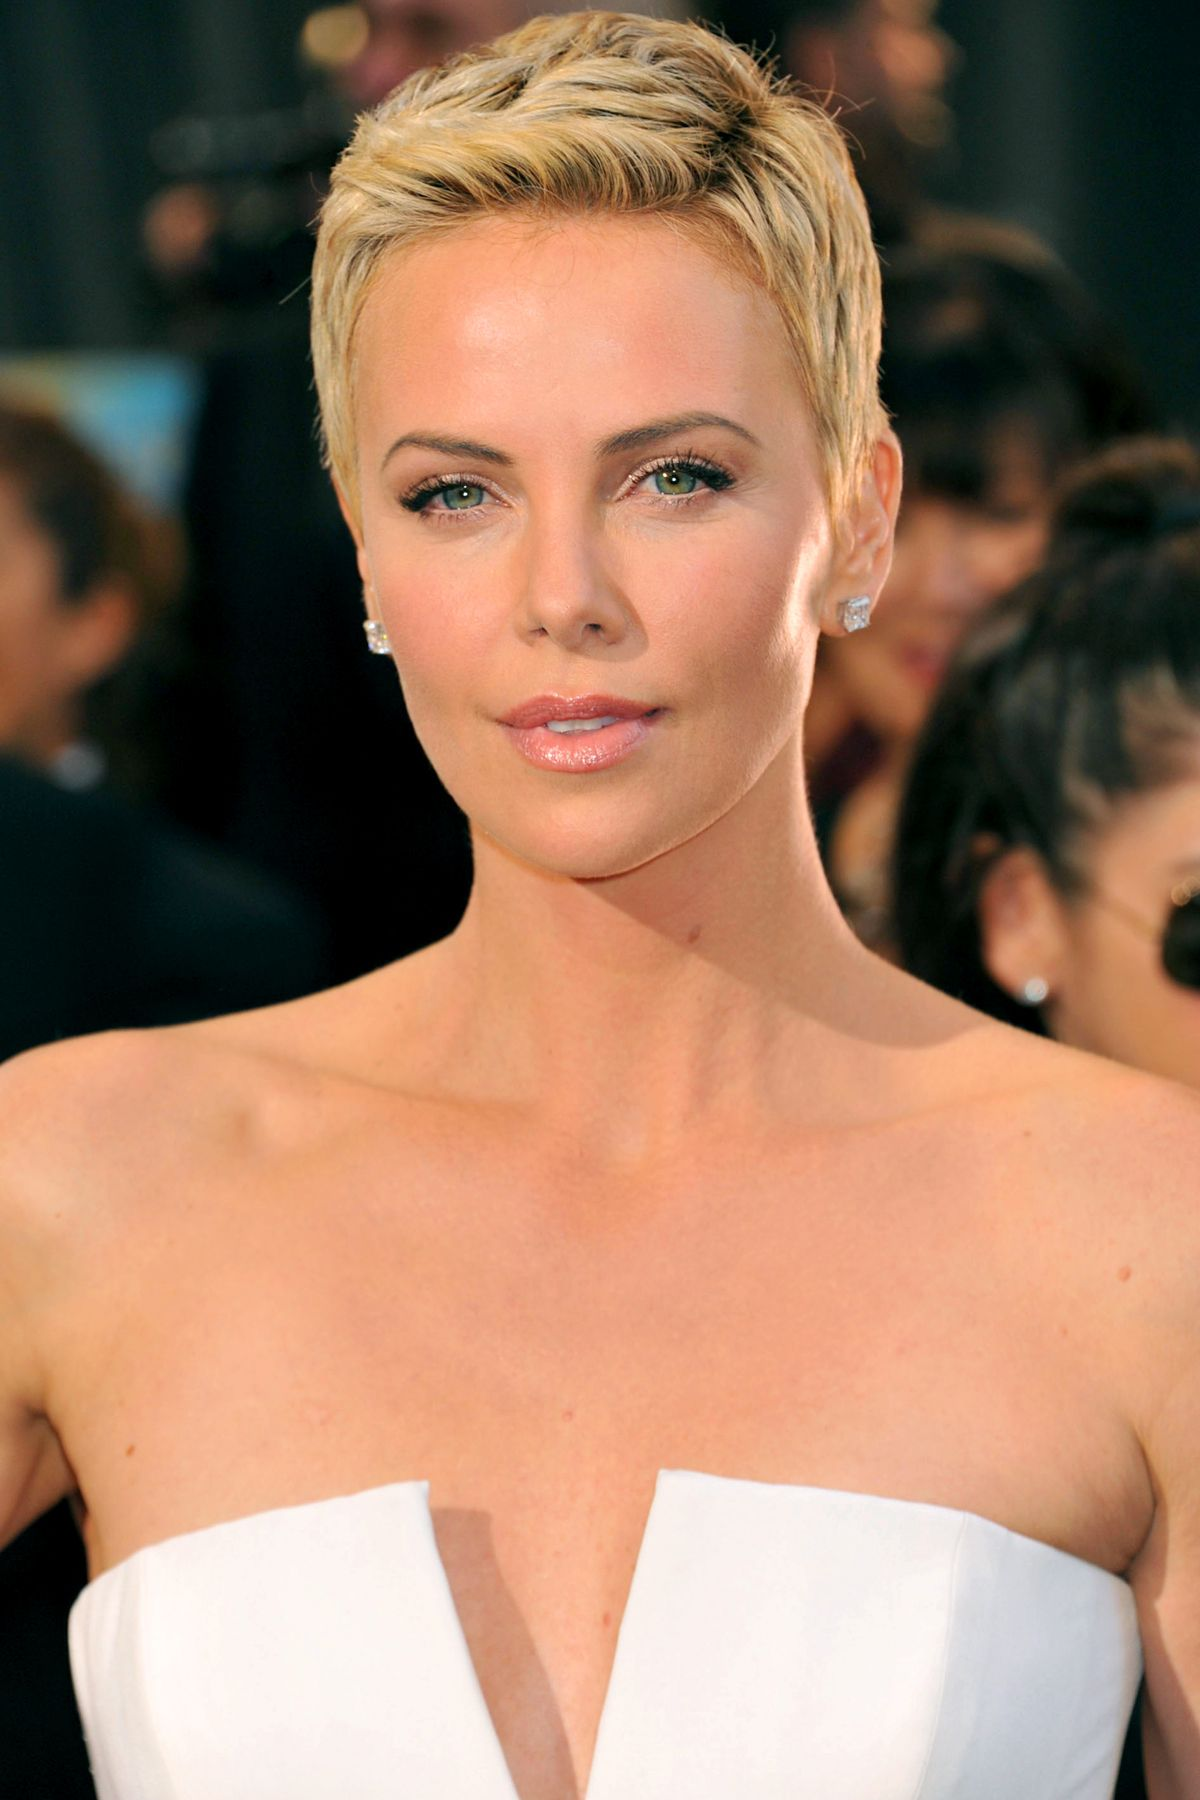 Charlize theron at the 2013 academy awards shorthair charlize theron at the 2013 academy awards shorthair charlizetheron academyawards oscars urmus Image collections